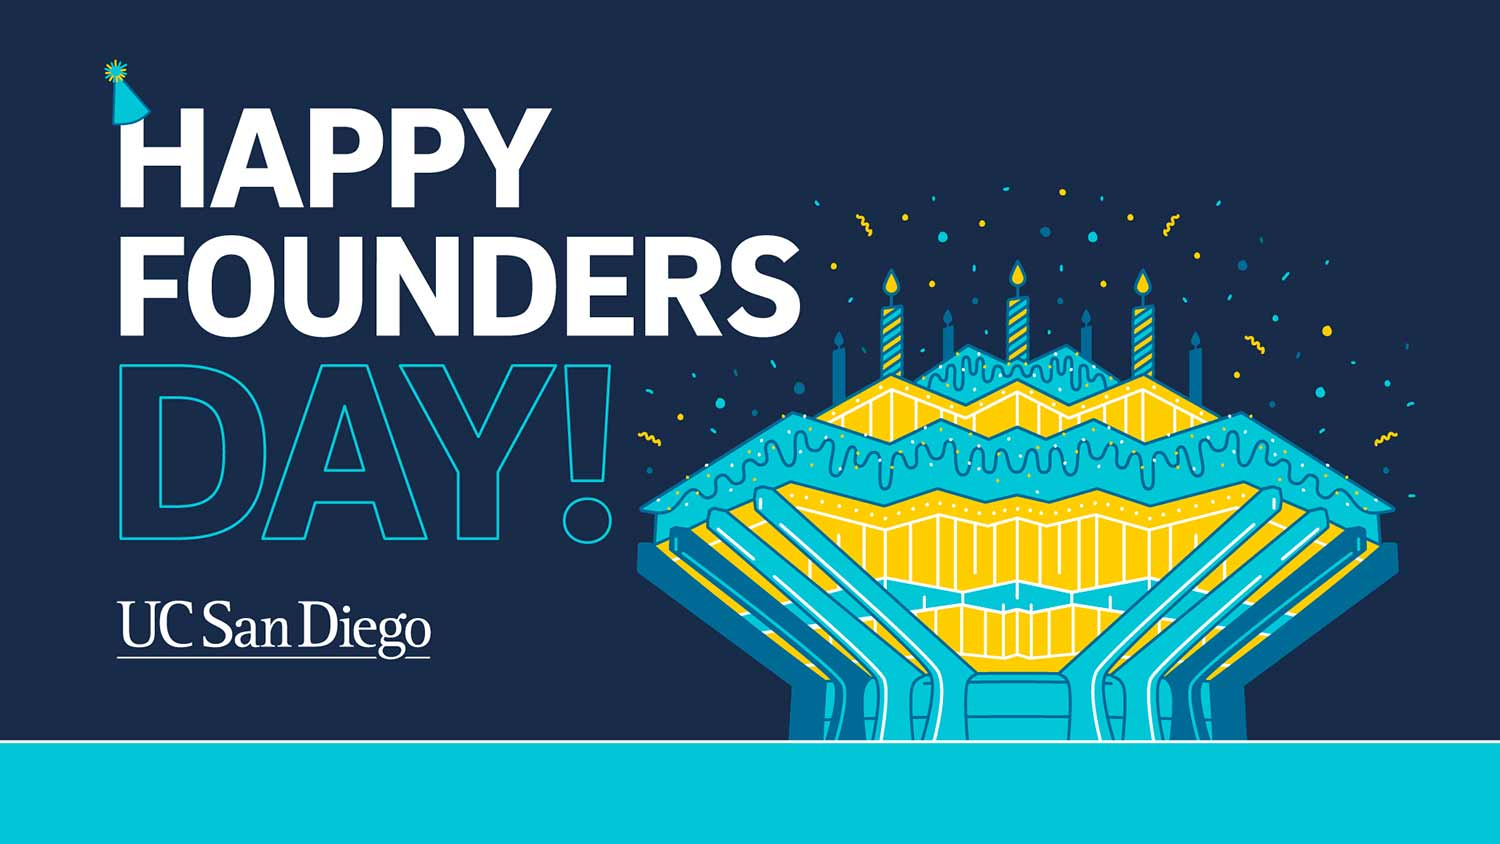 Happy Founders Day from UC San Diego